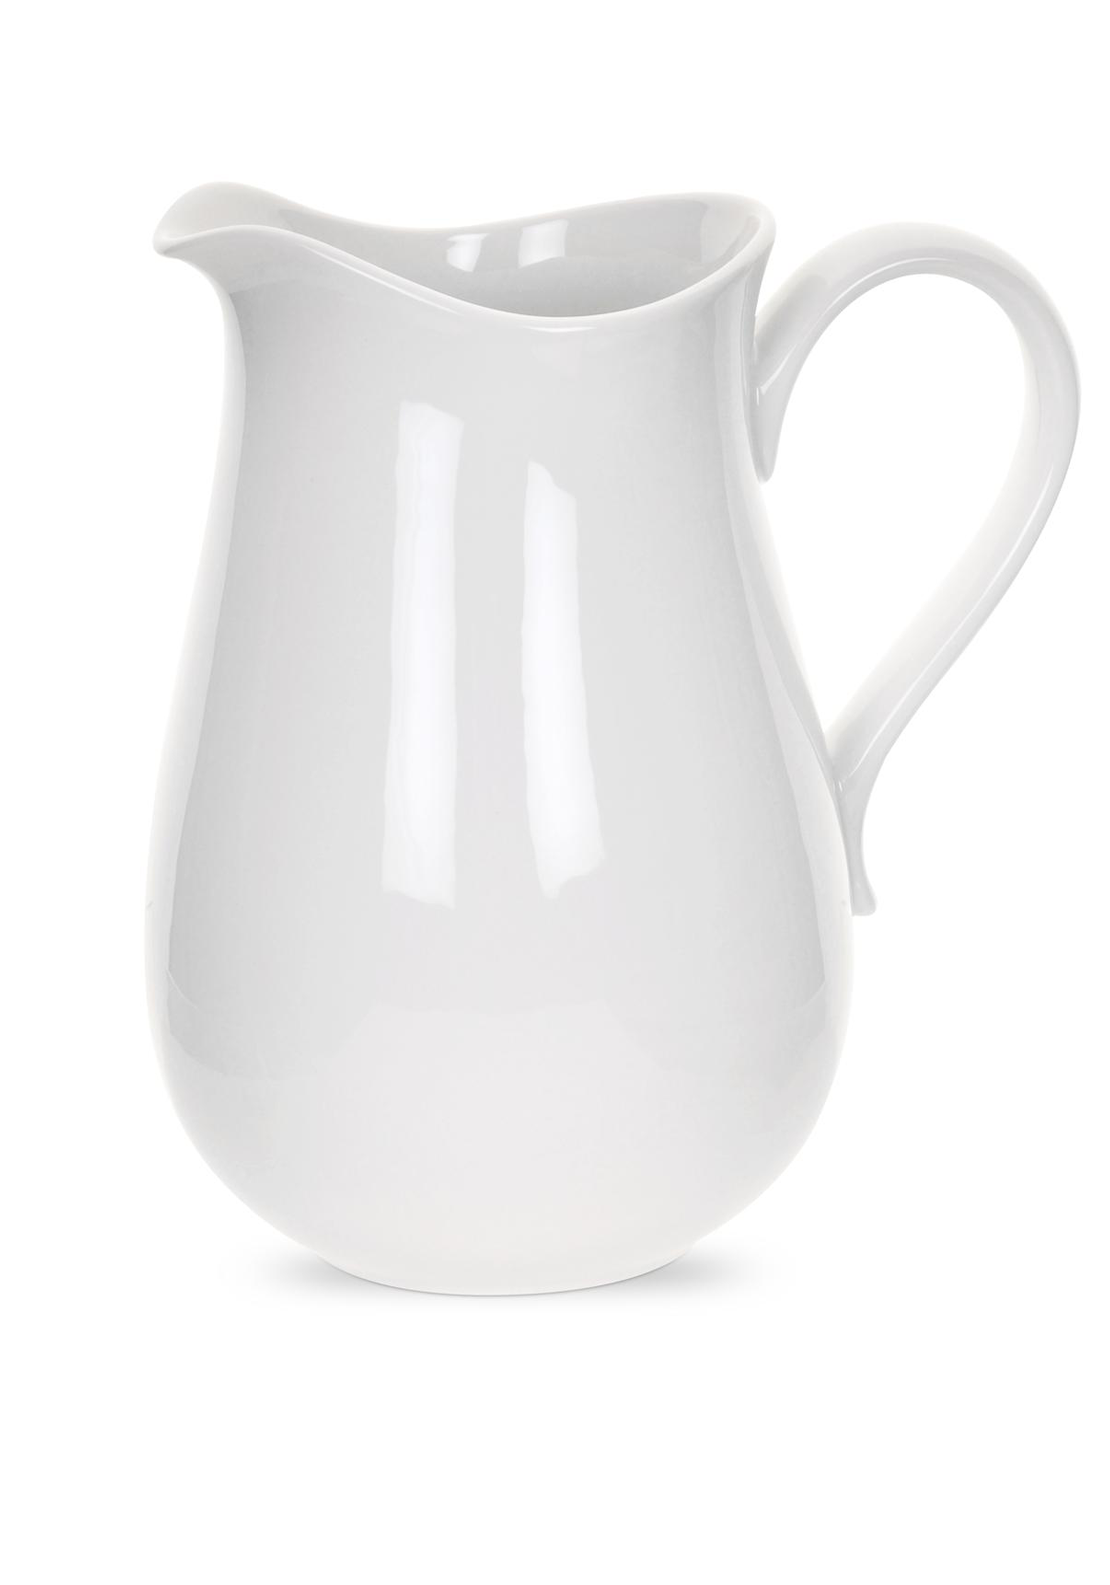 Portmeirion Porcelain Medium Pitcher Jug, White